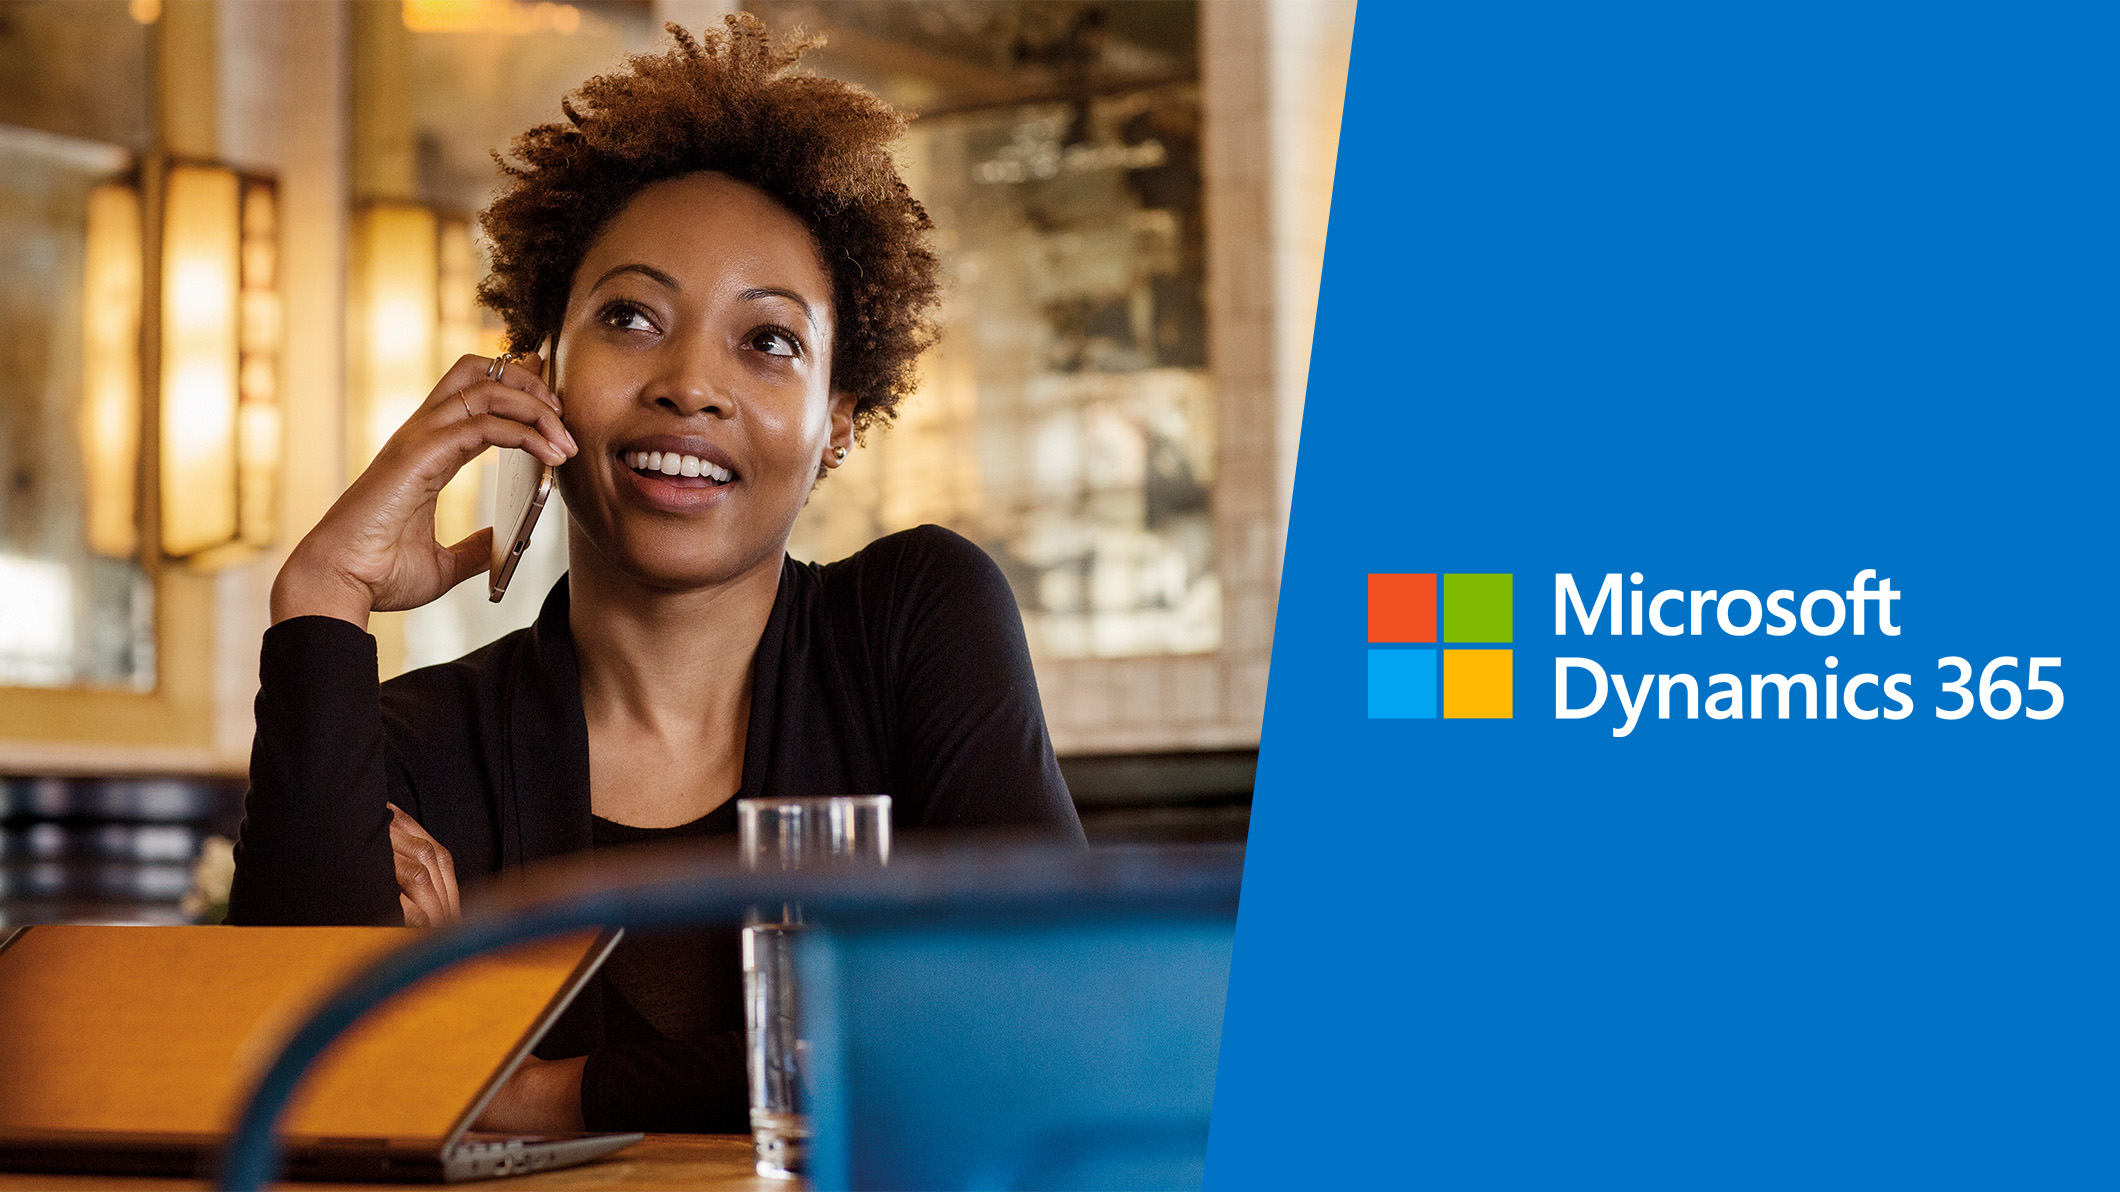 Dynamics 365 for customer engagement for Sales MB-210.1